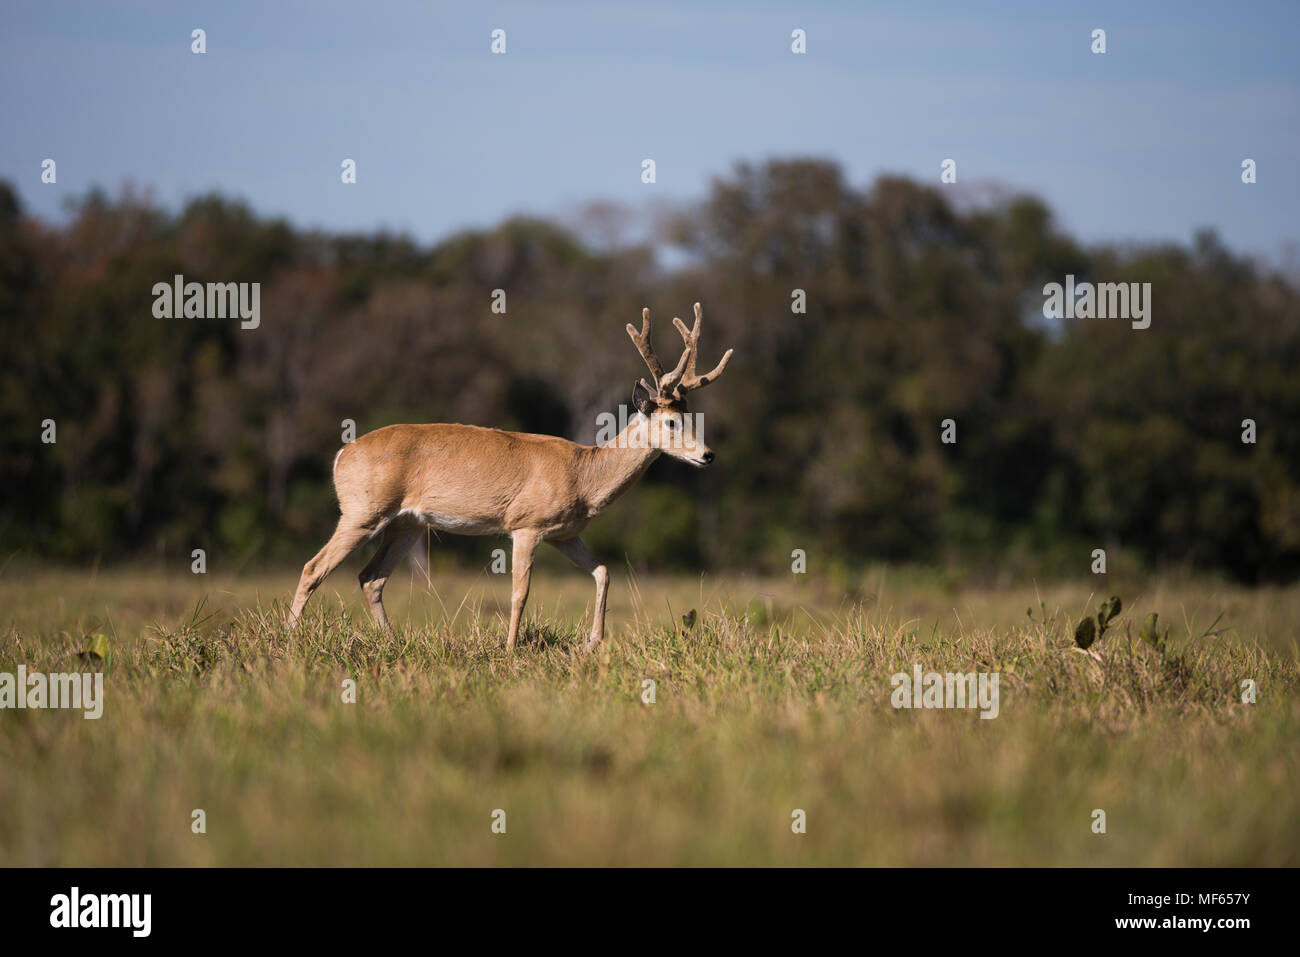 A male Pampas Deer (Ozotoceros bezoarticus) from South Pantanal - Stock Image